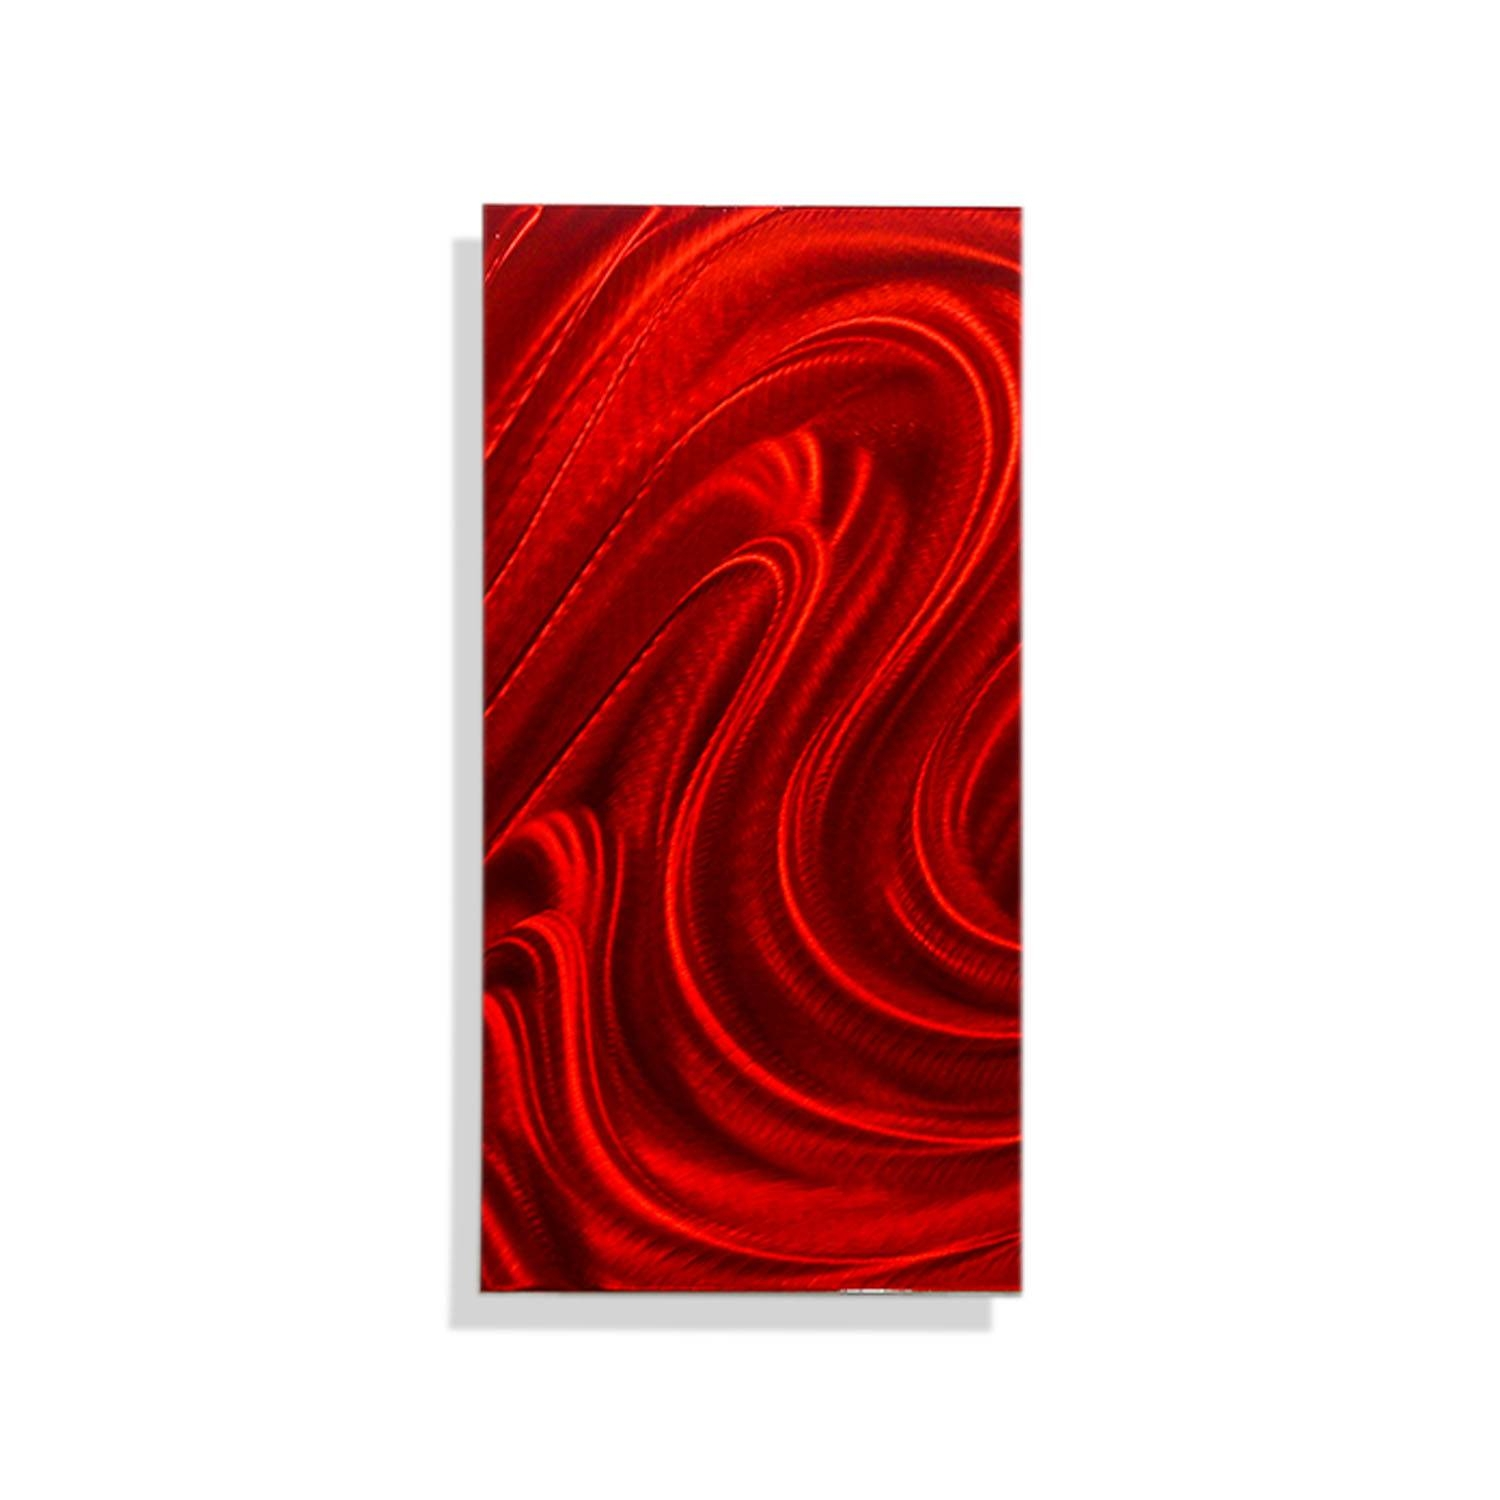 Red Mirage Solo – Red Metal Wall Art – Single Panel Wall Décor For Most Up To Date Red Metal Wall Art (View 16 of 20)